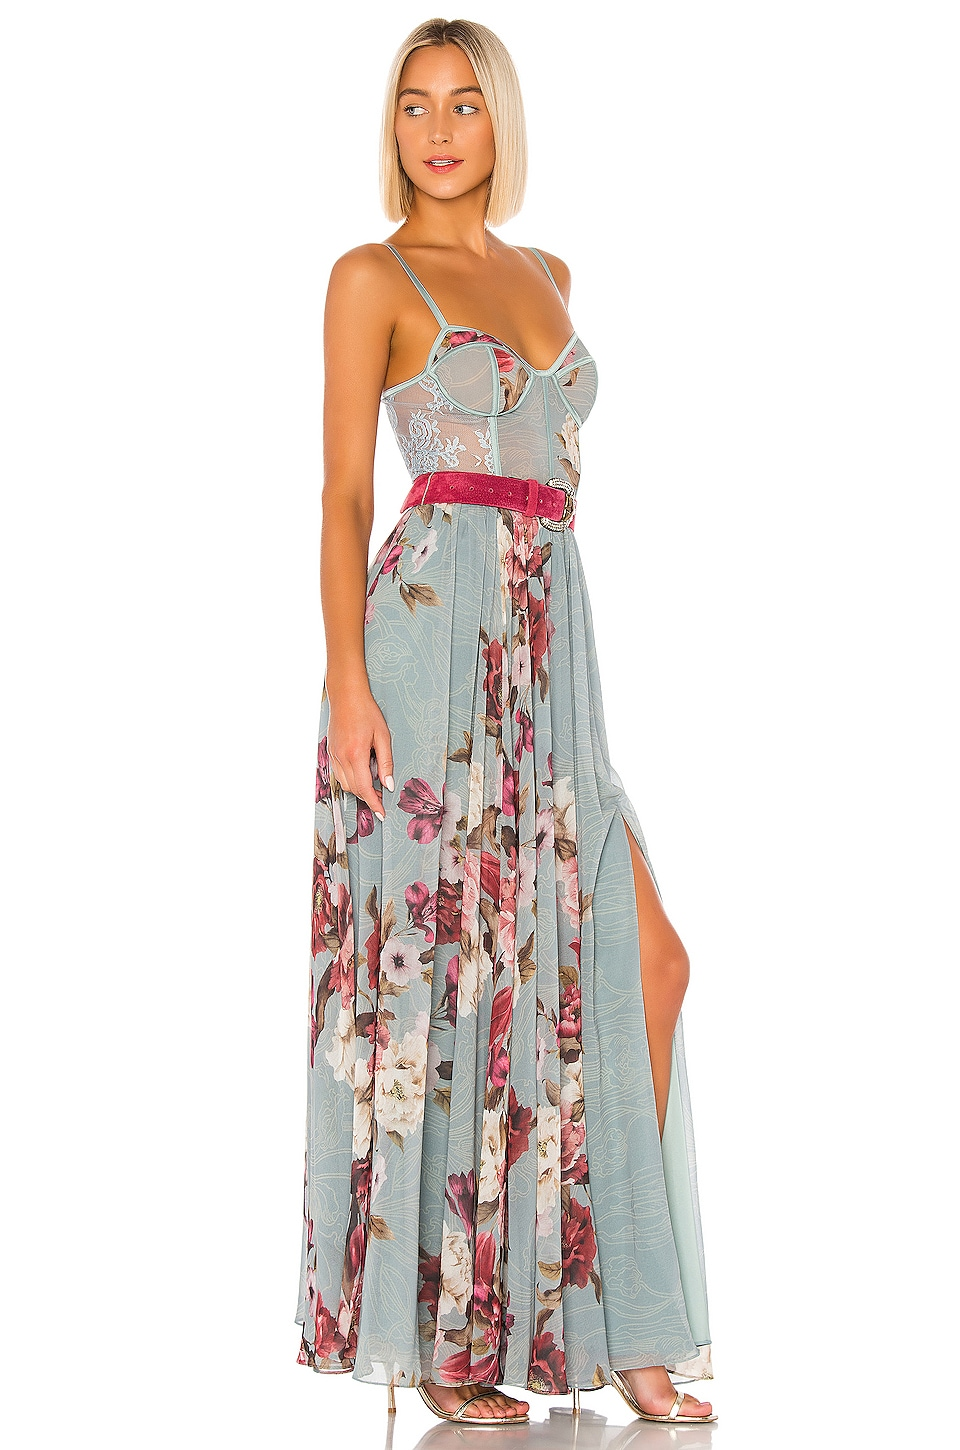 Peony Bustier Maxi Dress, view 2, click to view large image.